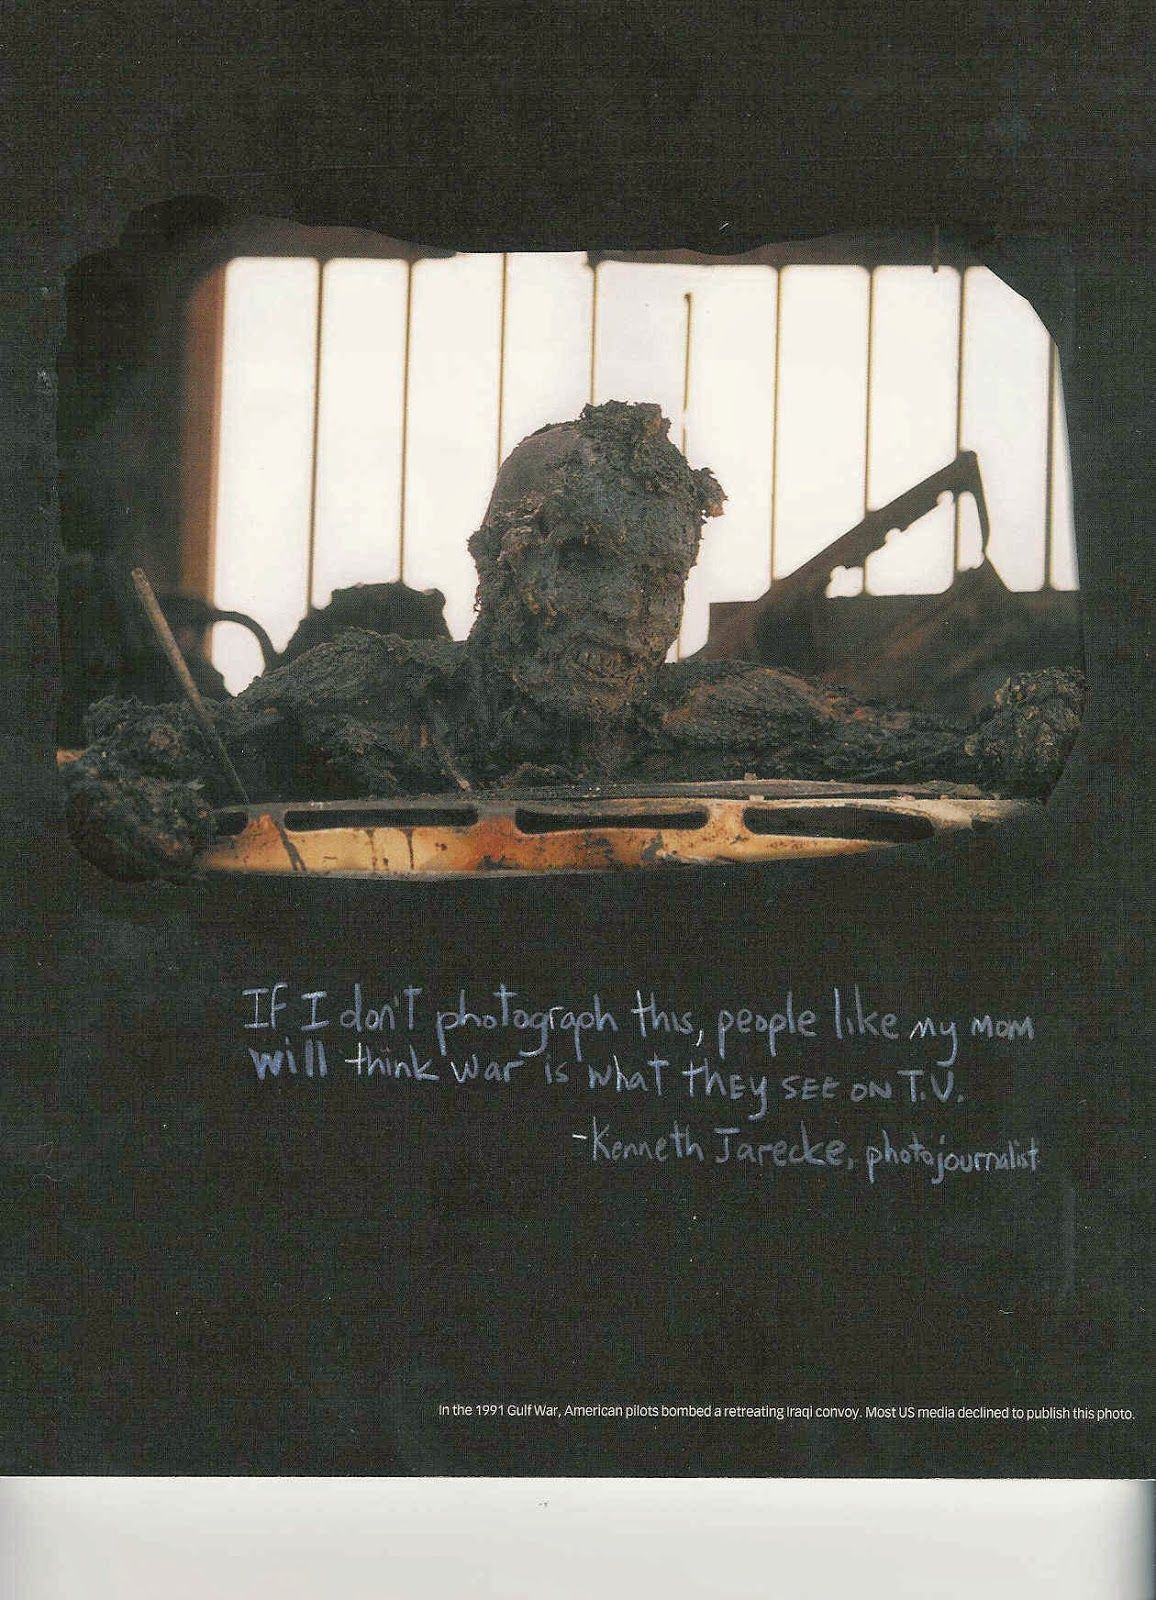 in the s general schwarzkopf led the us forces in the persian this photo at first was regarded by many editors as too disturbing to print but later became one of the most famous images of the first gulf war